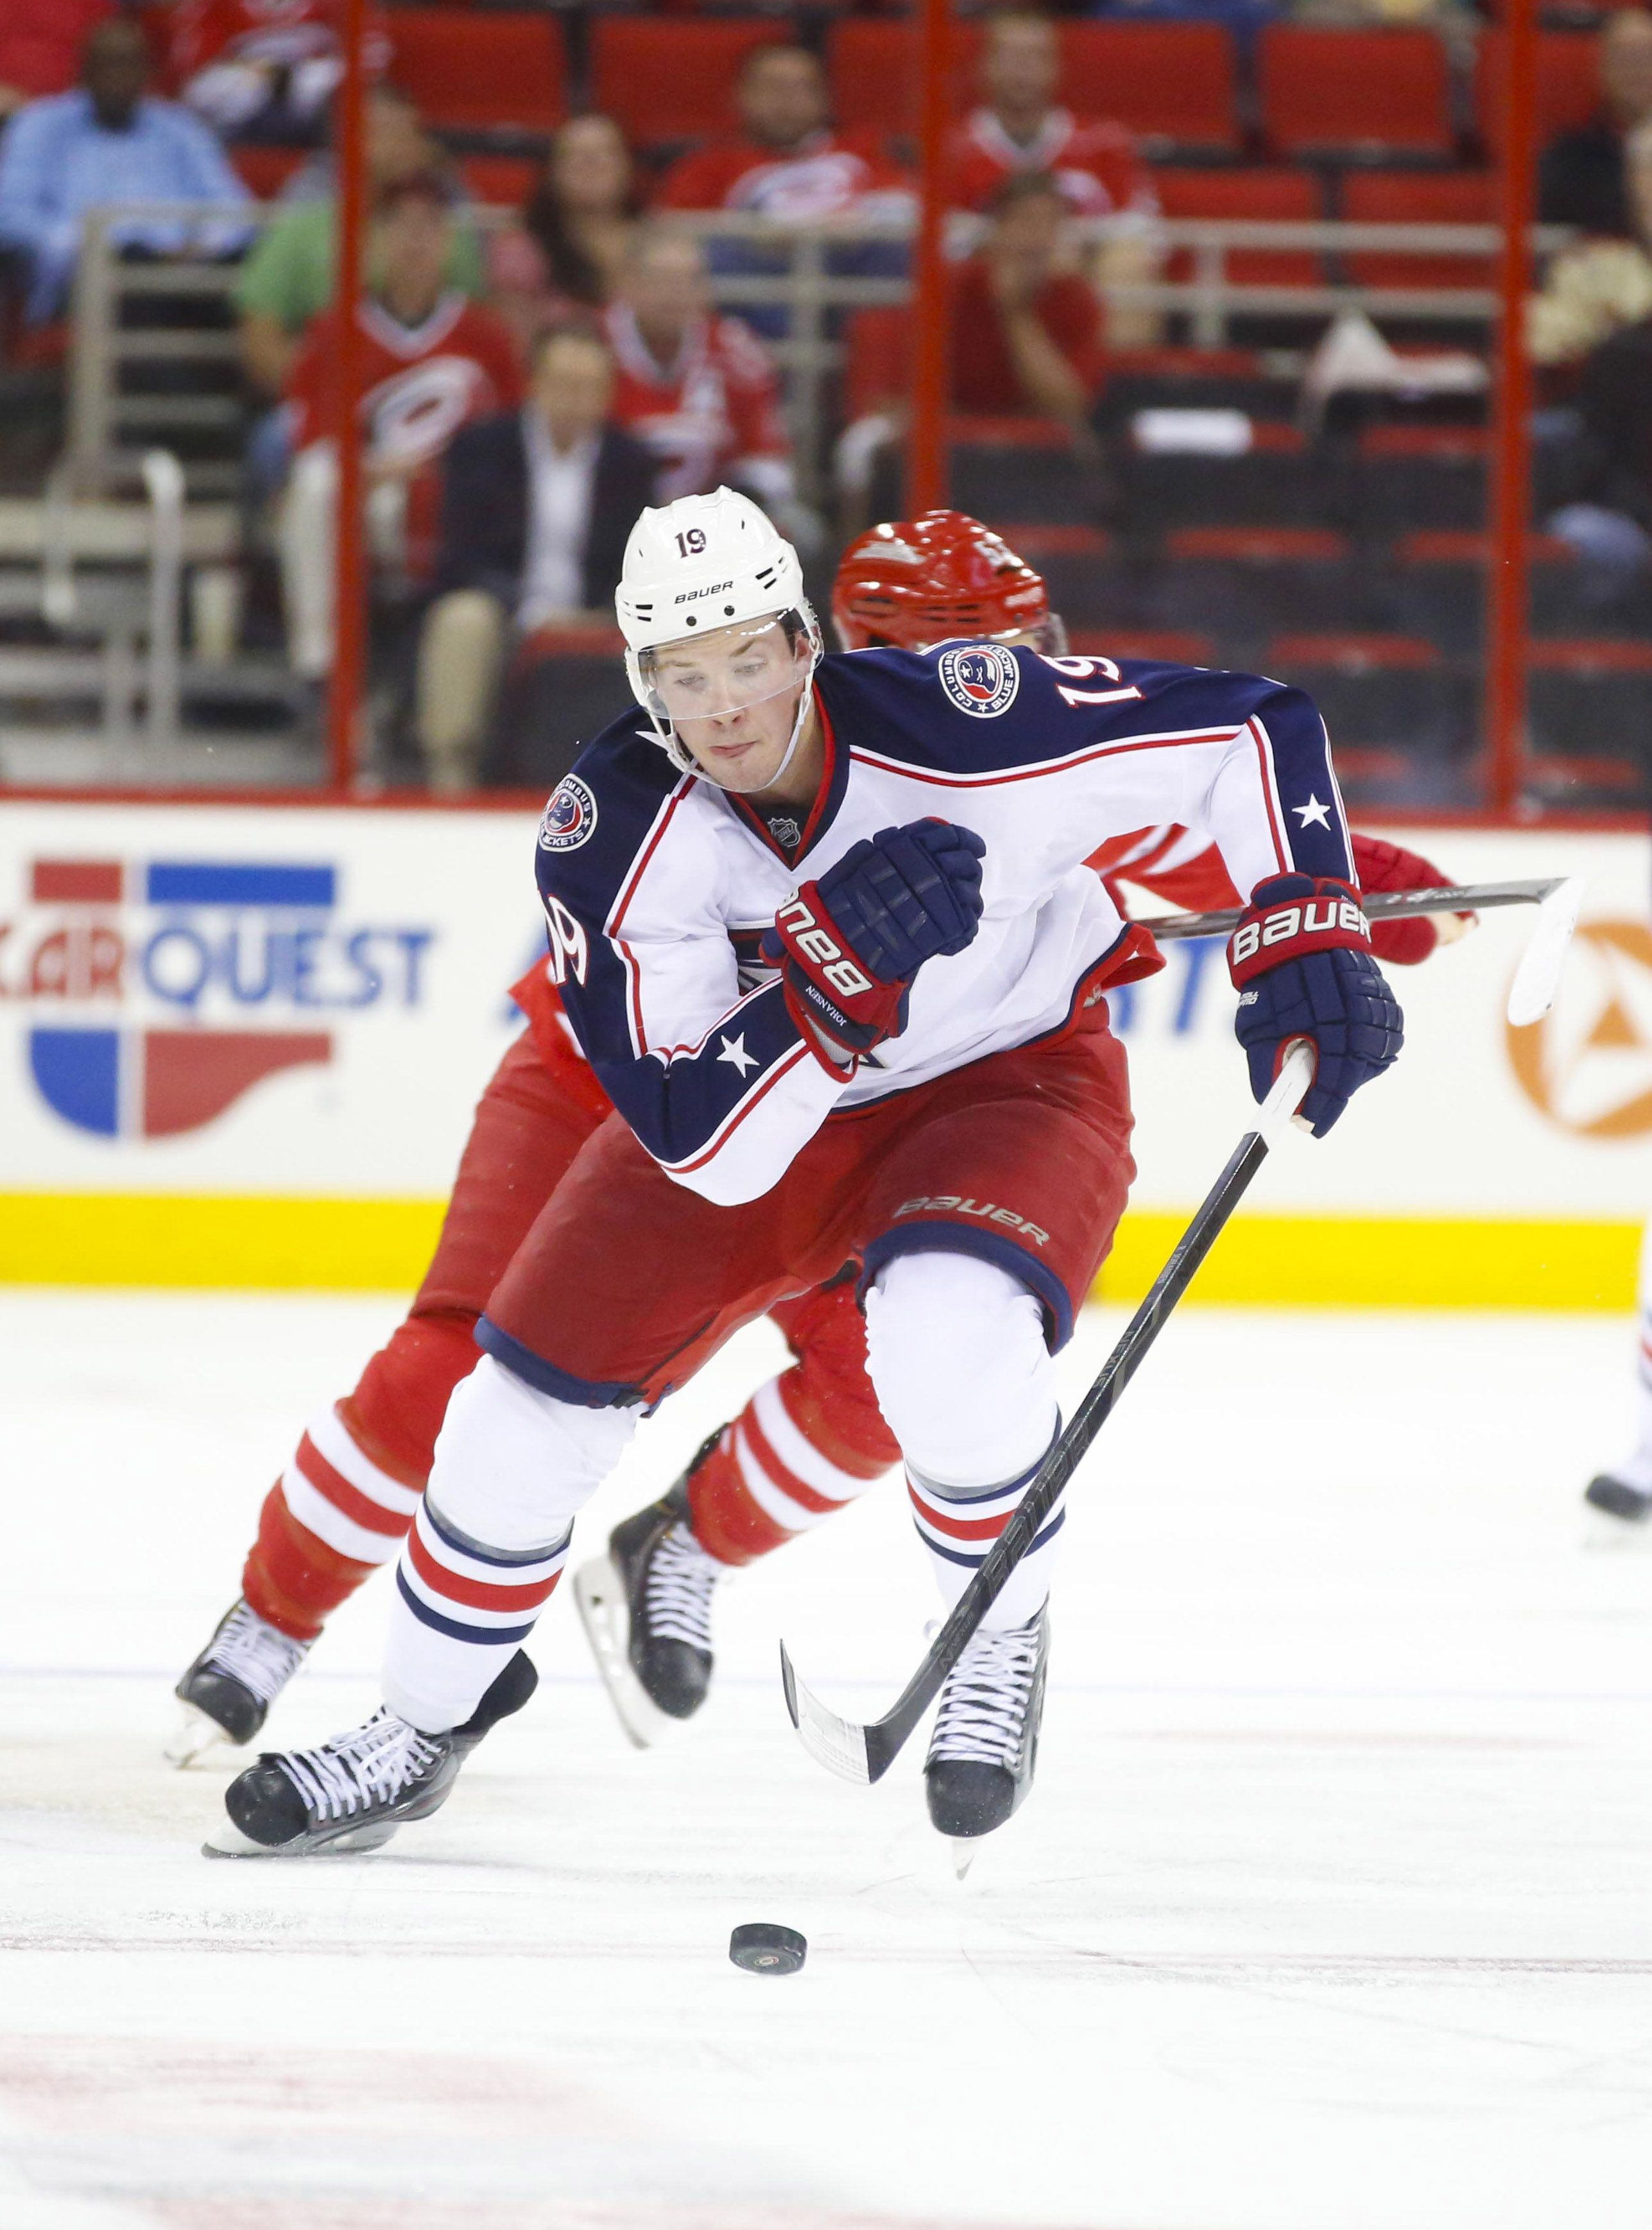 CrowdCam Hot Shot: Columbus Blue Jackets center Ryan Johansen carries the puck against the Carolina Hurricanes at PNC Center. The Blue Jackets defeated the Hurricanes 5-4. Photo by James Guillory